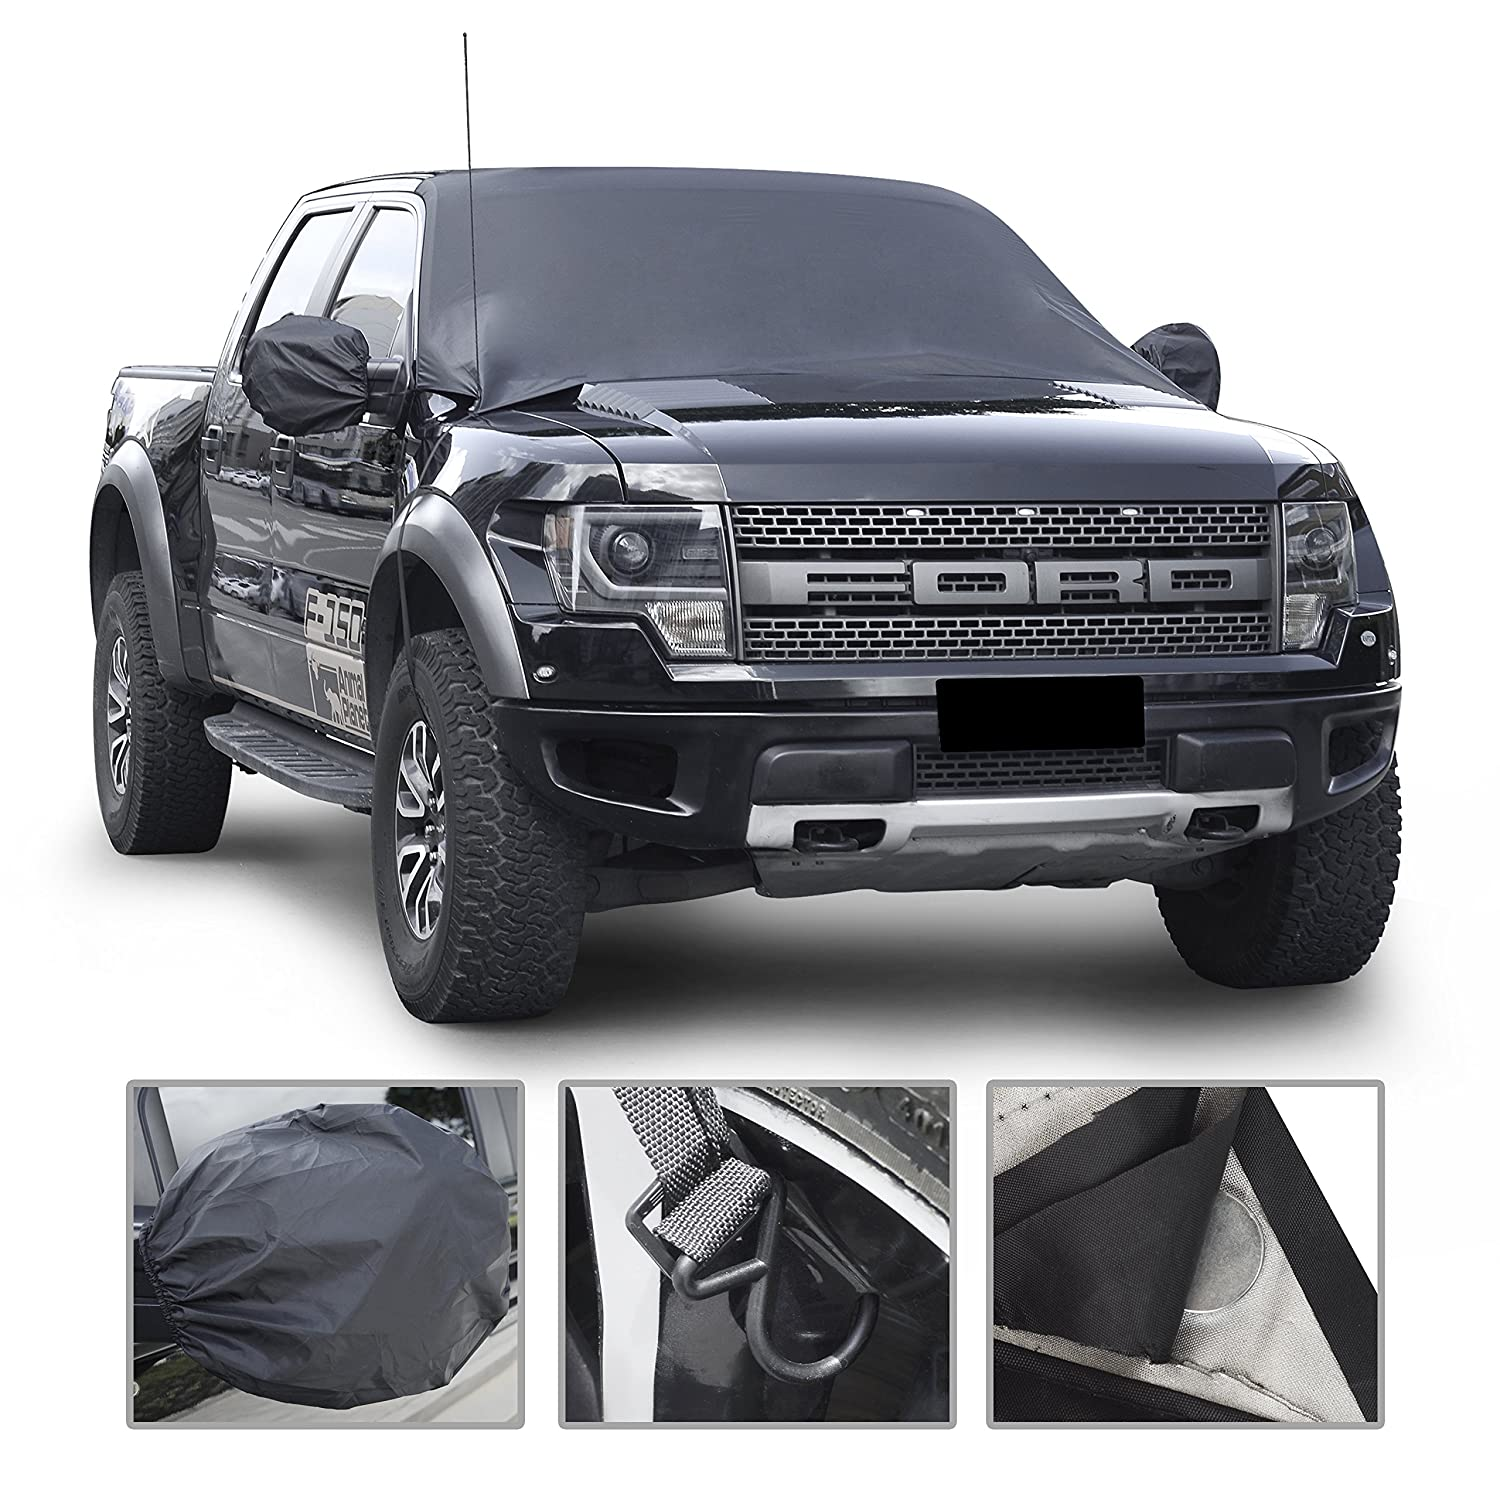 Car Windshield Snow Cover By Mak Tools,Extra Large Size for Most Vehicle,72x57With Mirror Snow Covers 72x57With Mirror Snow Covers 4332982803